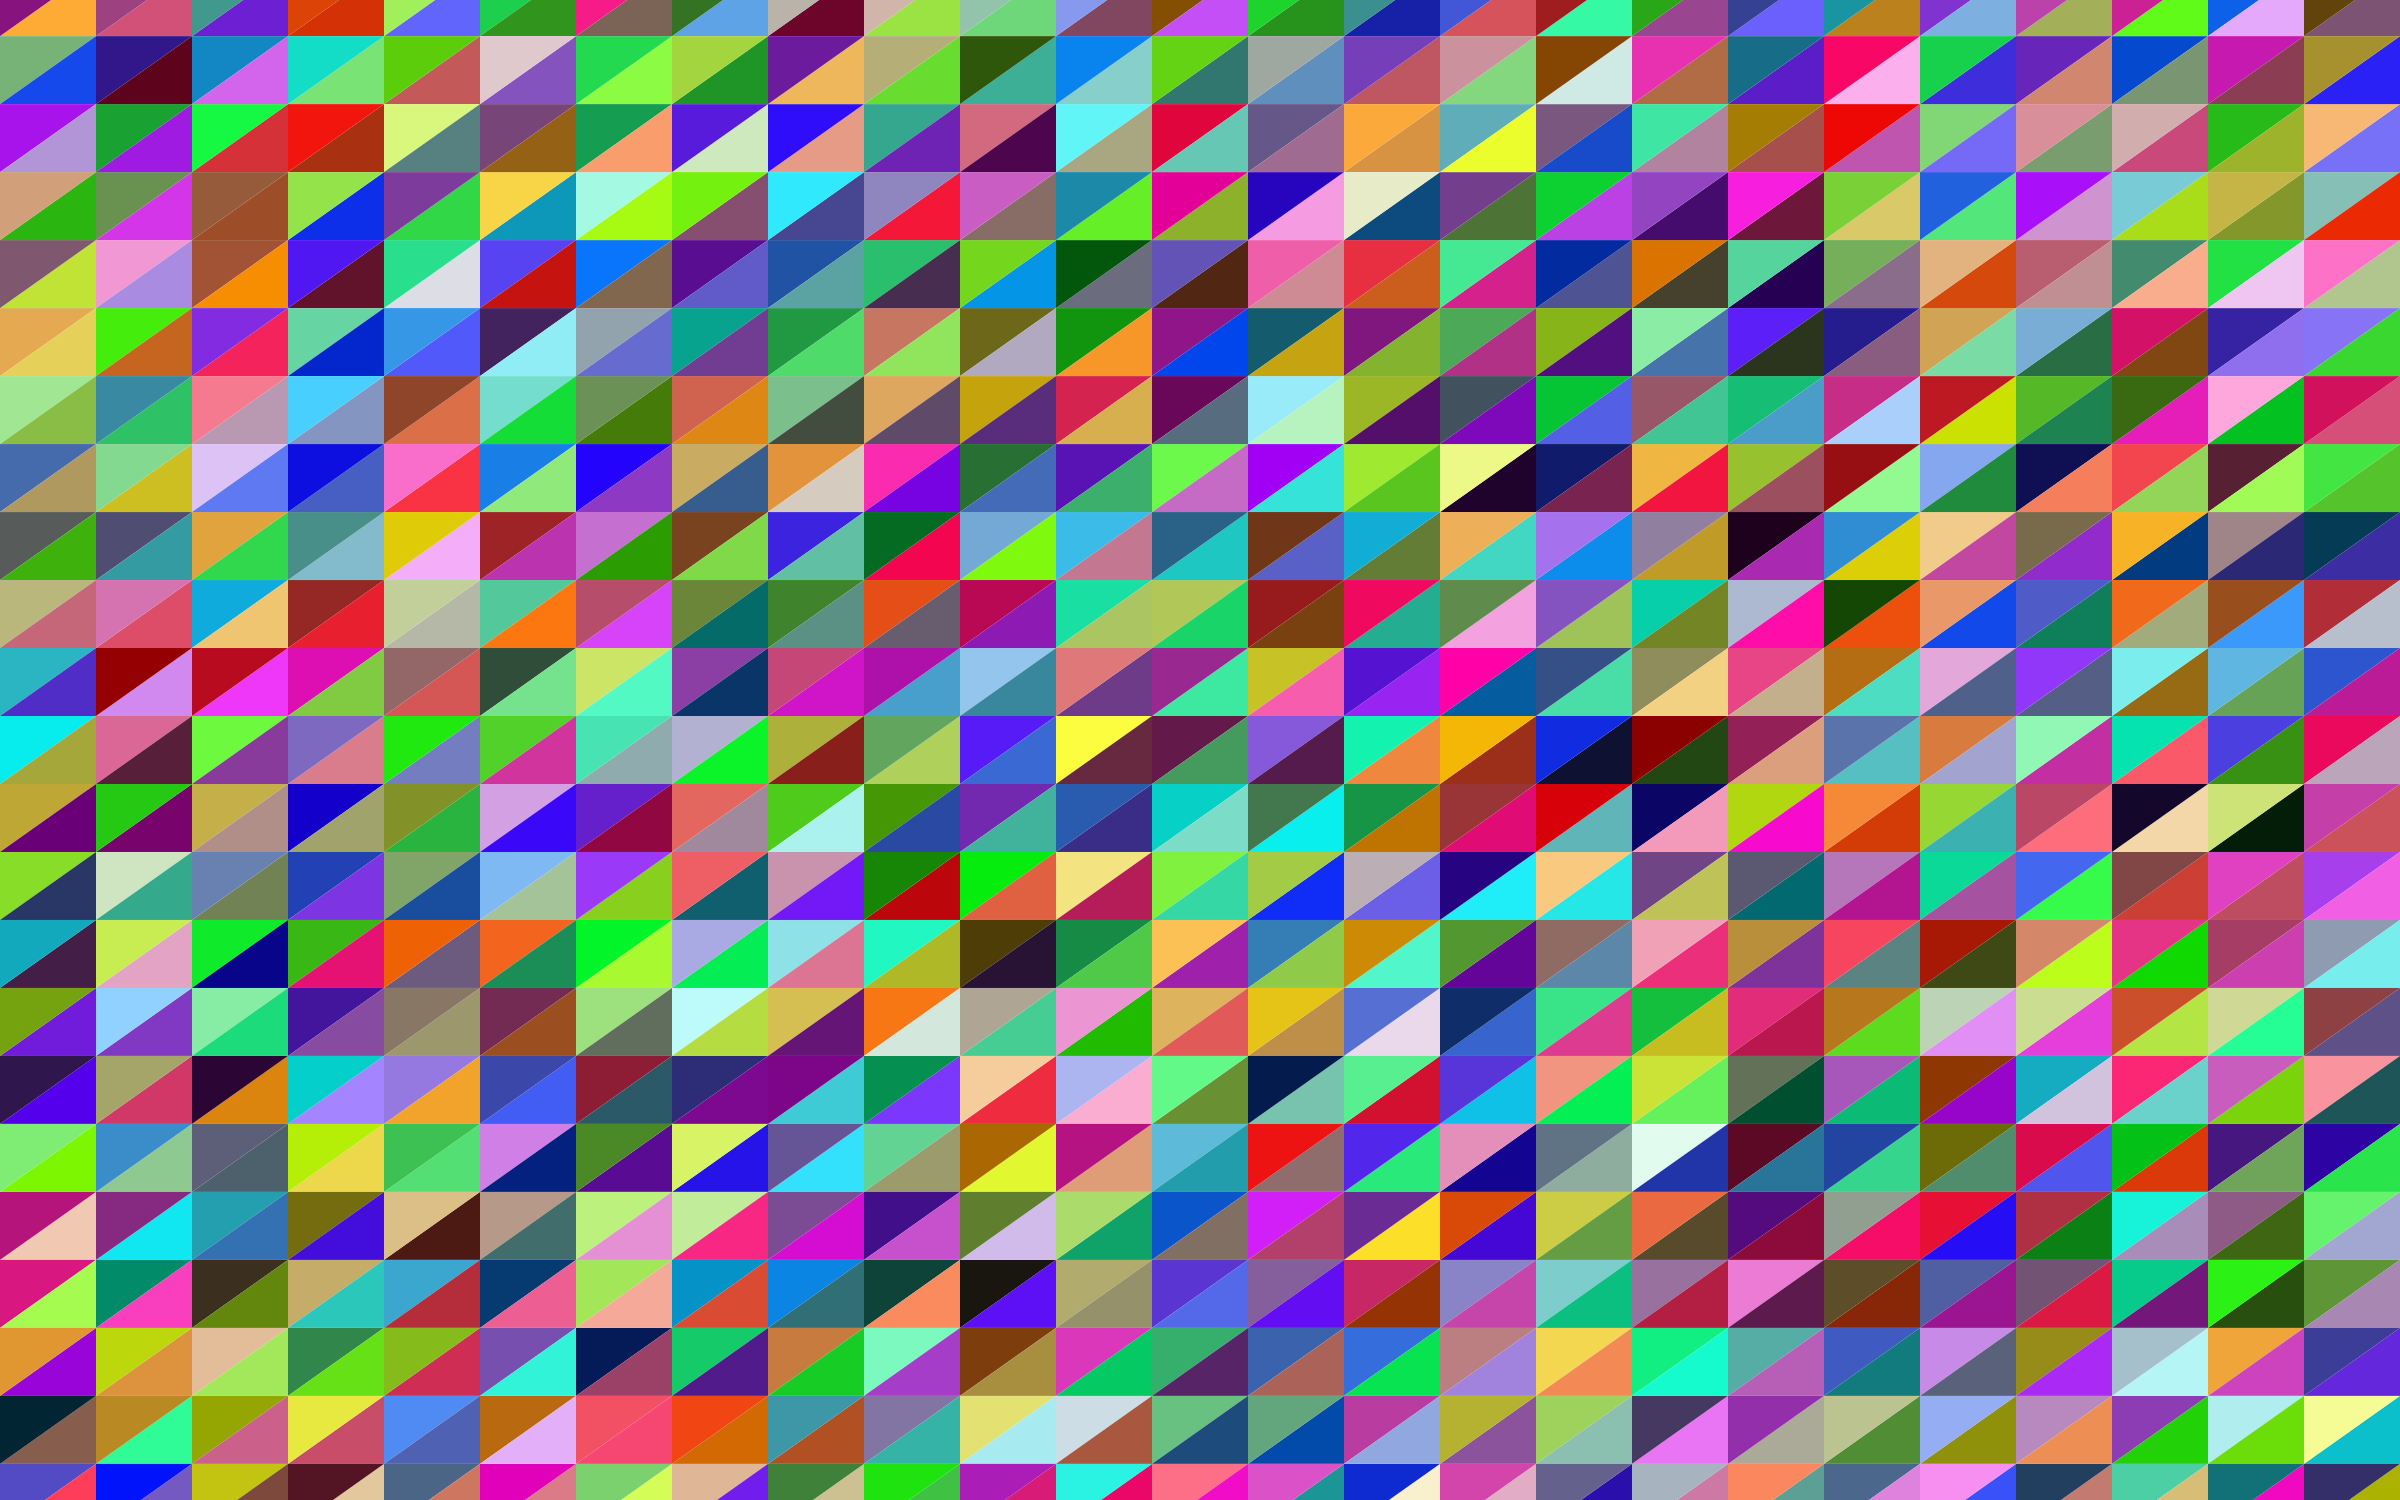 Prismatic Triangular Background Design by GDJ